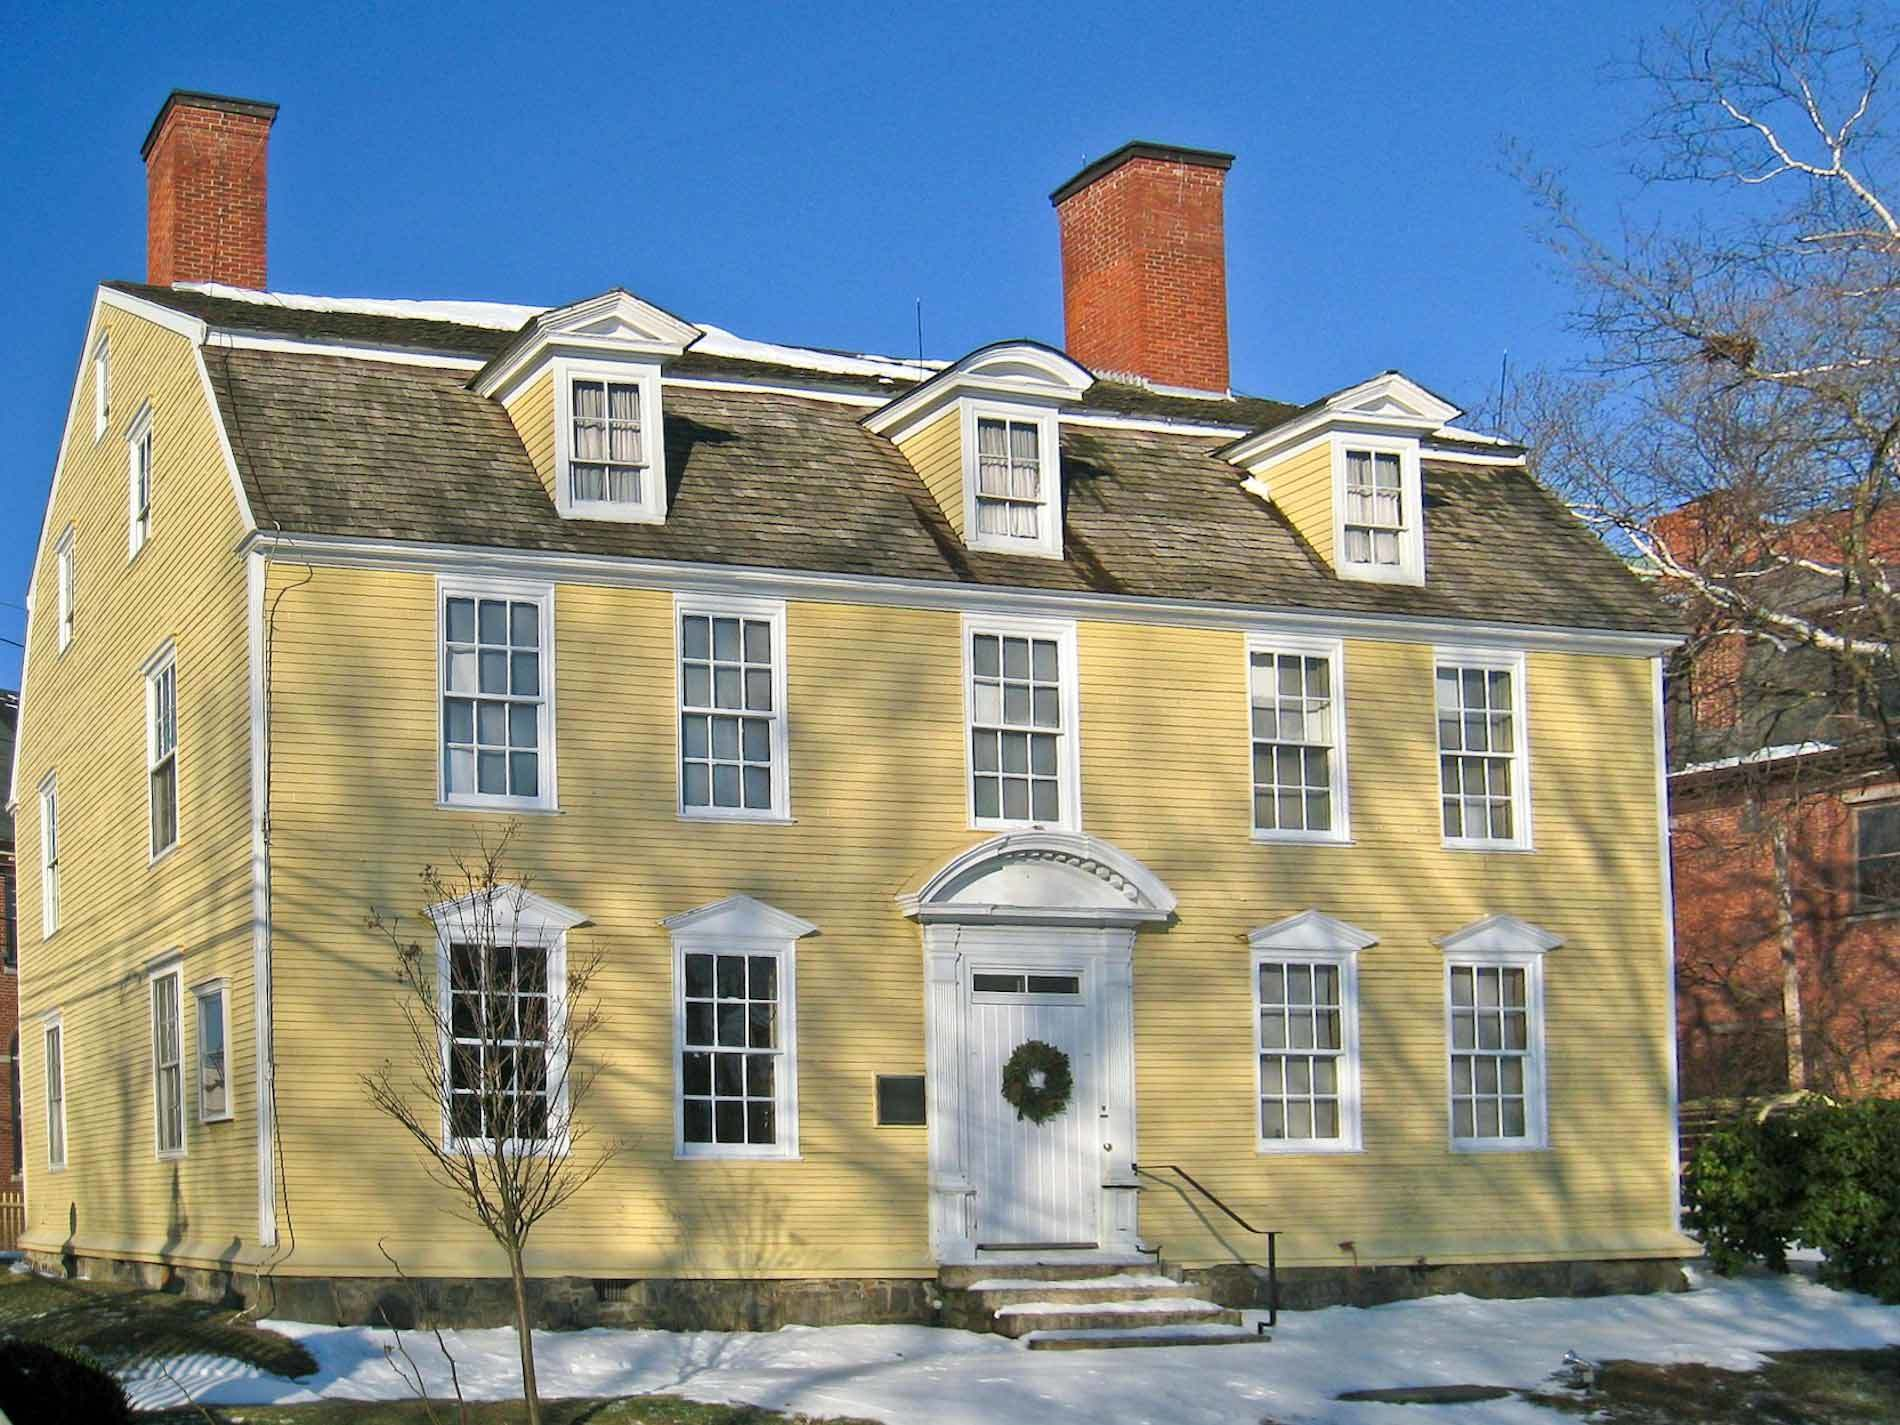 Antique homes for sale in greenwich ct find and buy old for Luxury homes for sale in greenwich ct